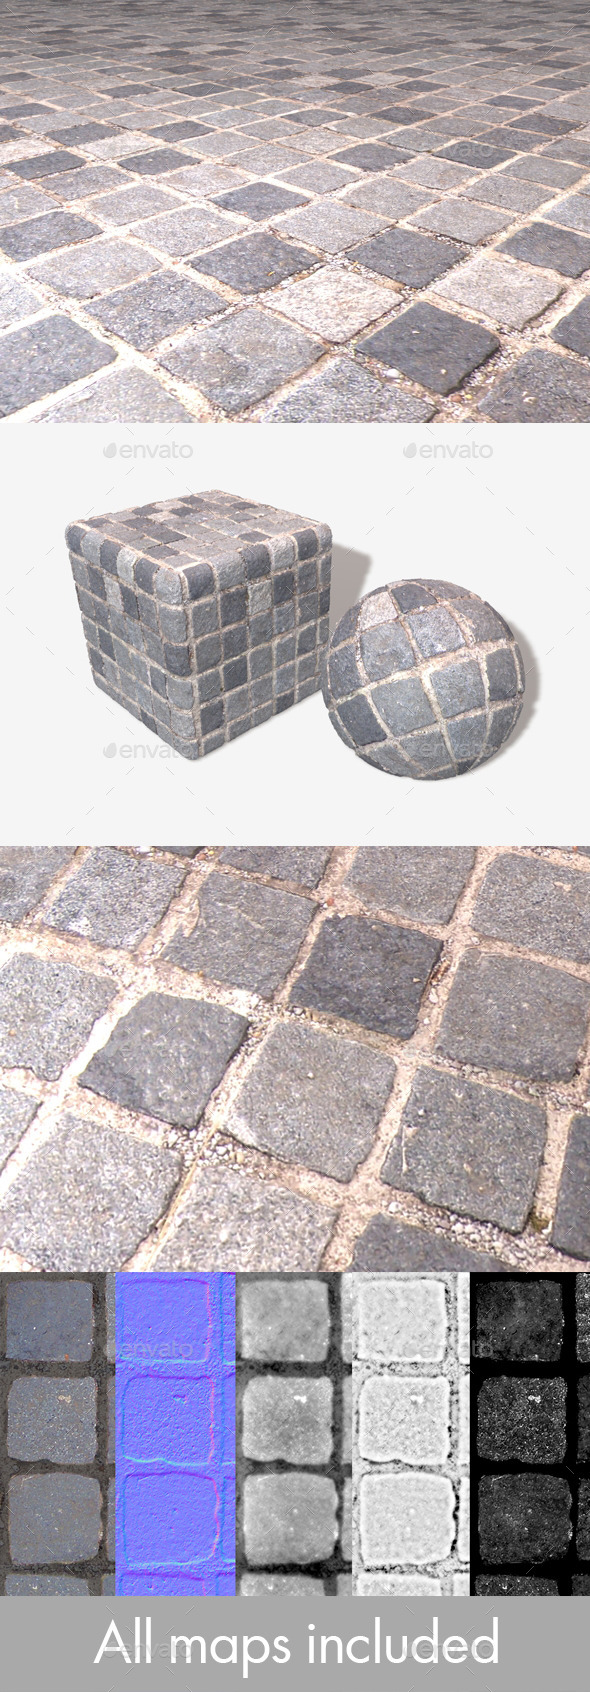 Square Cobbles Seamless Texture - 3DOcean Item for Sale